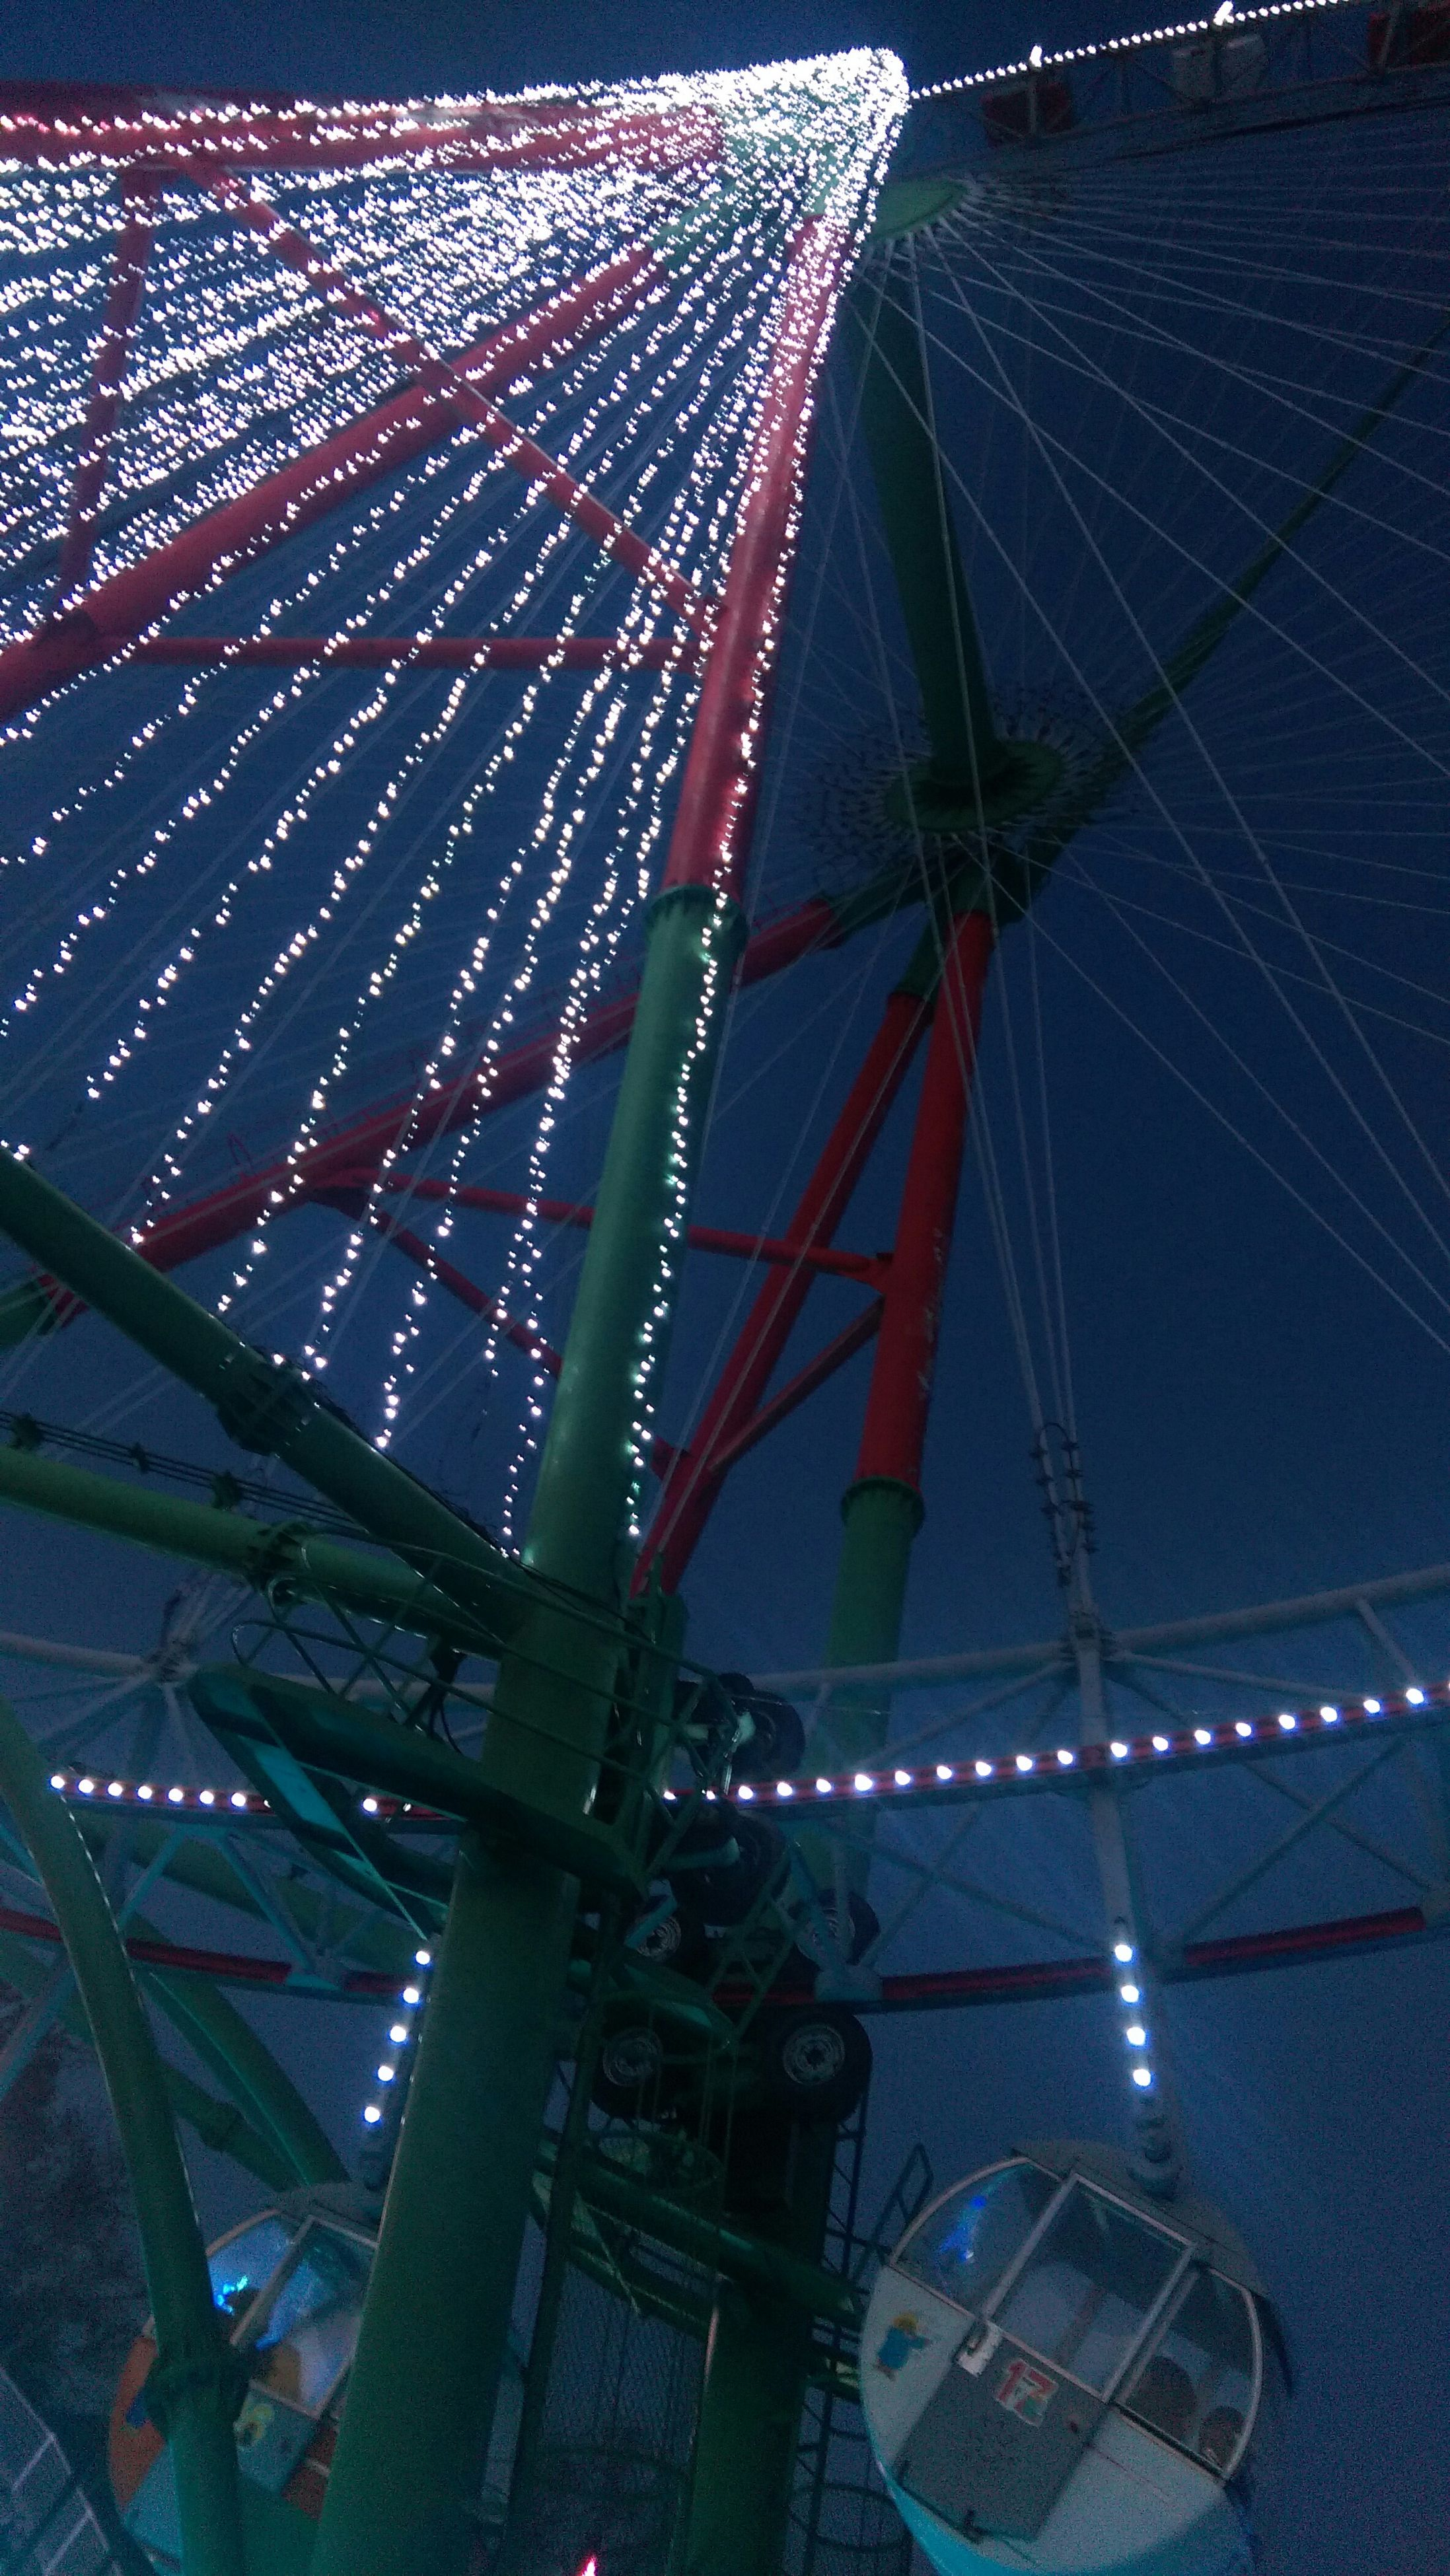 ferris wheel, night, illuminated, arts culture and entertainment, amusement park, amusement park ride, built structure, transportation, city, connection, architecture, outdoors, sky, bridge - man made structure, engineering, no people, high angle view, clear sky, multi colored, river